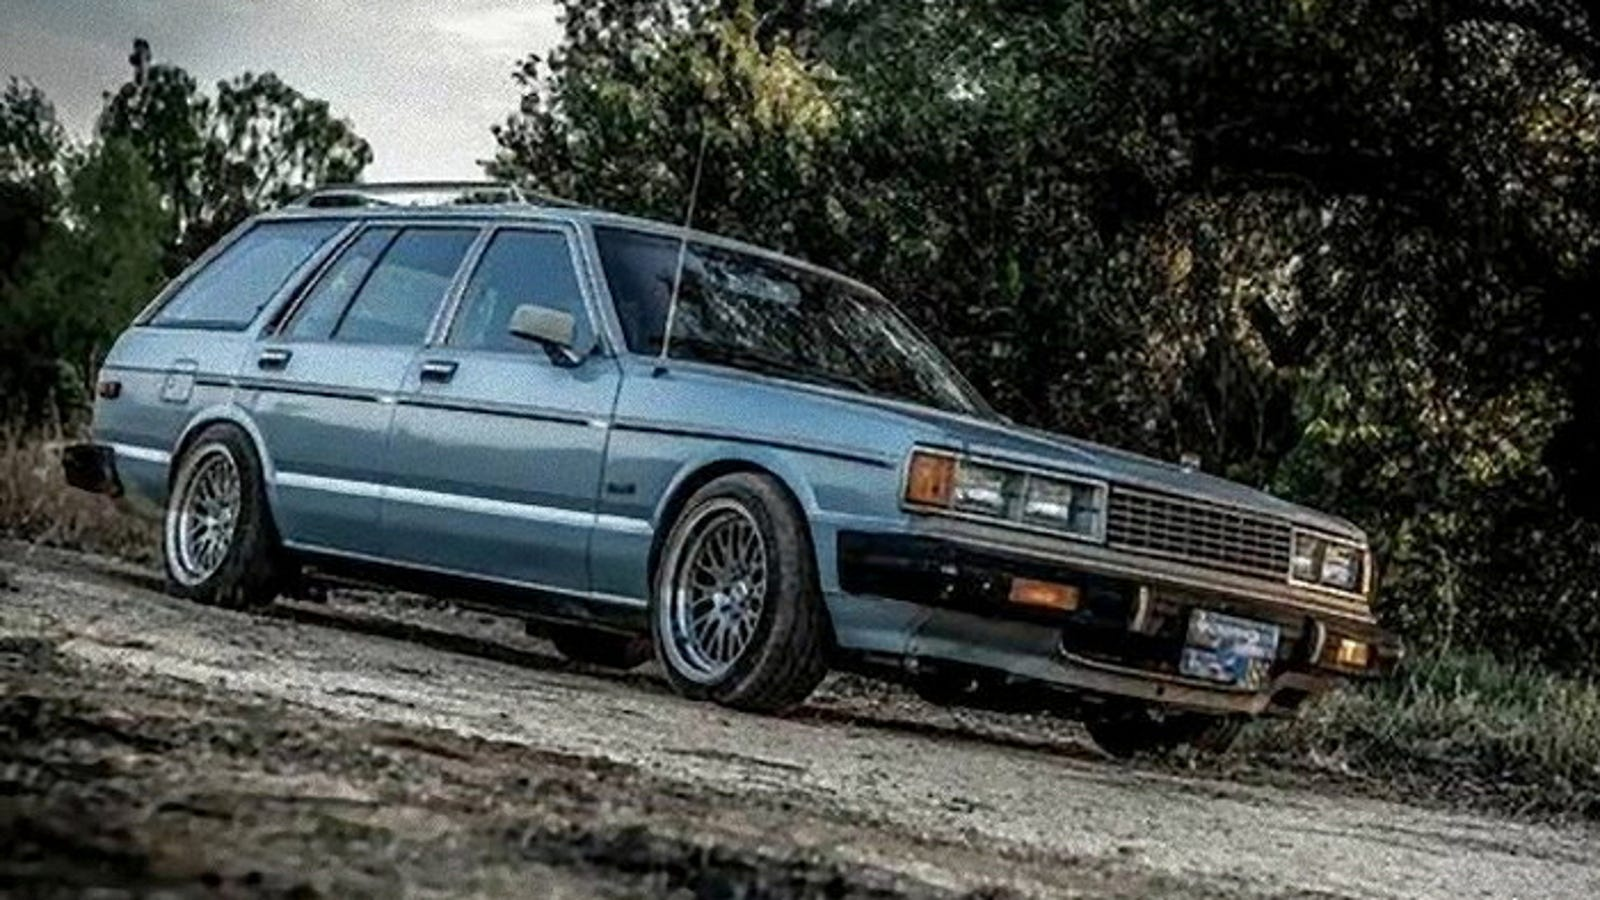 Could This 1982 Datsun Maxima S Rb25det Make It Worth 10 000